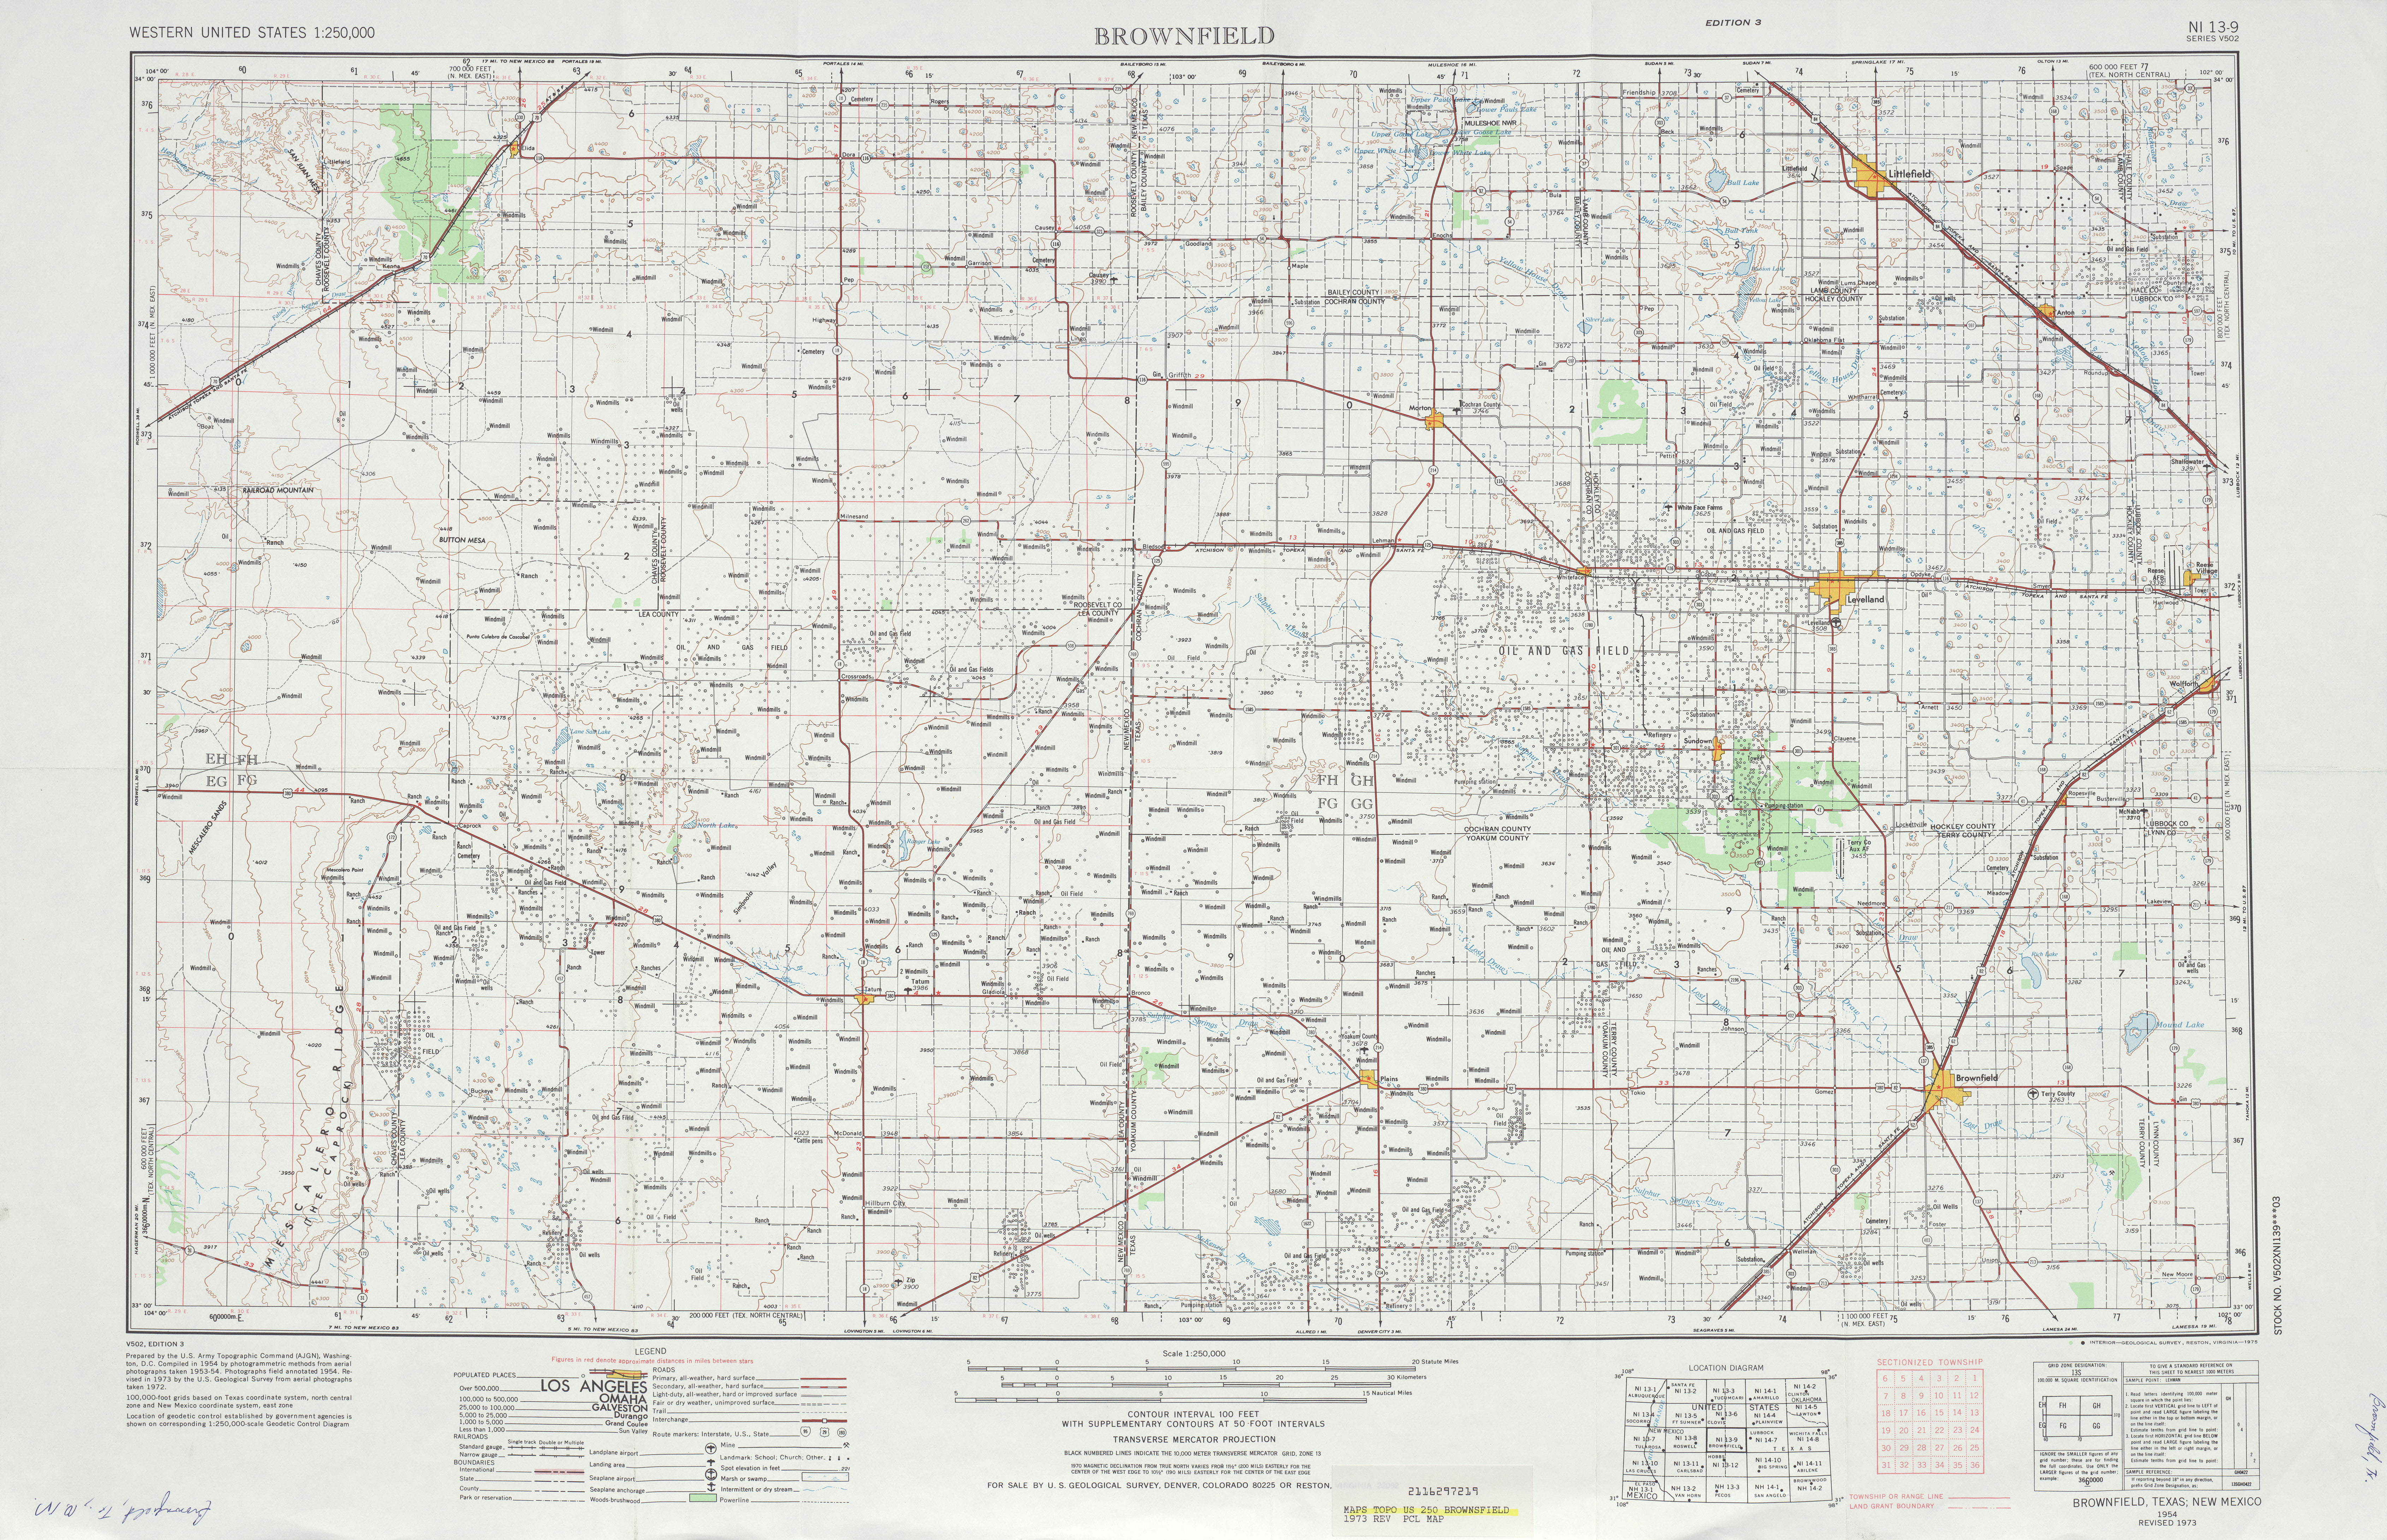 Brownfield Topographic Map Sheet, United States 1973